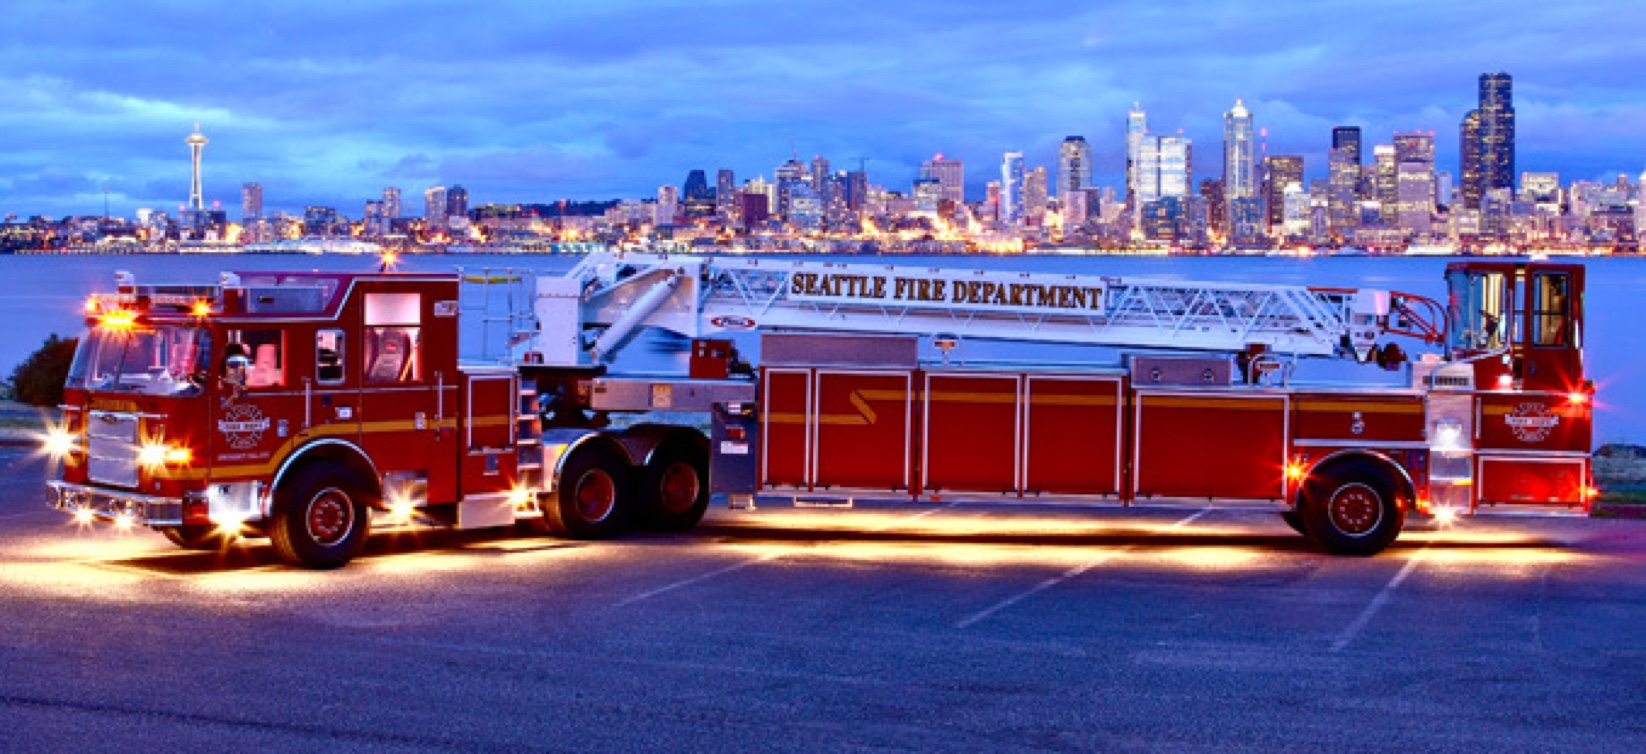 firetruck in front of city of seattle